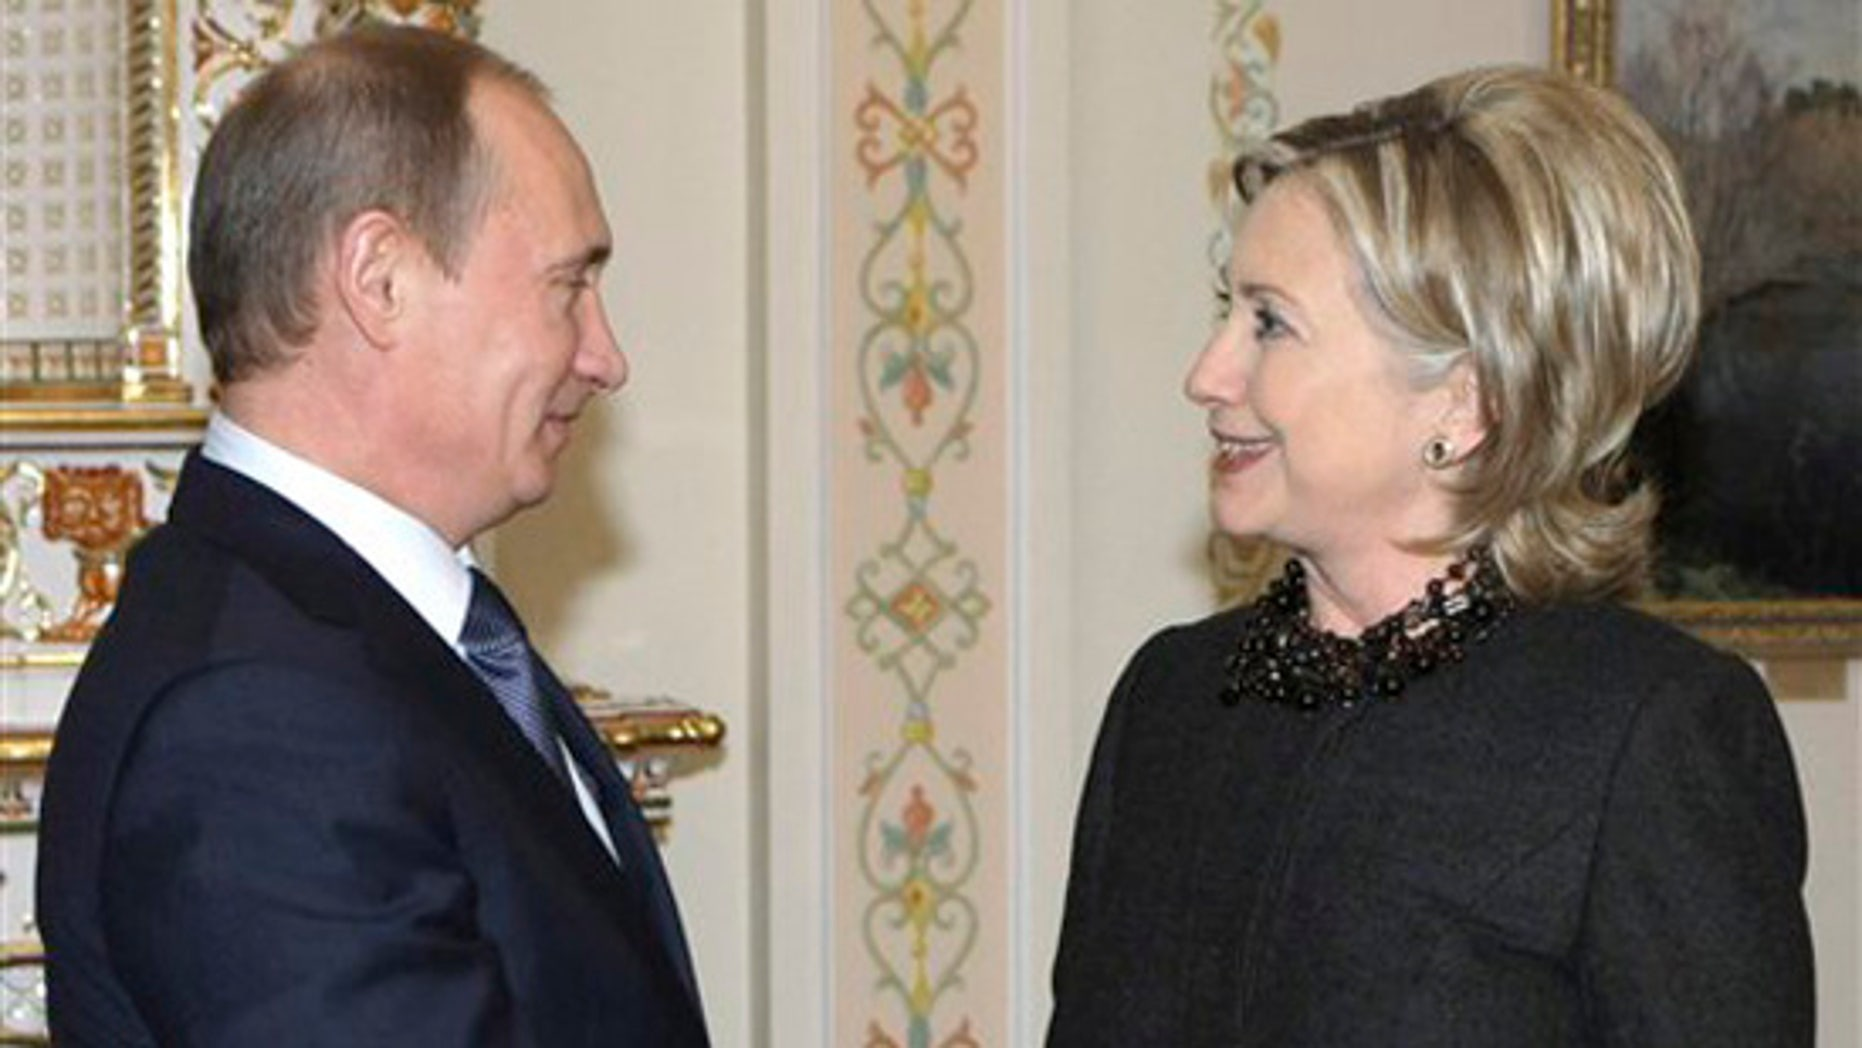 Russian Prime Minister Vladimir Putin, left, greets U.S. Secretary of State Hillary Rodham Clinton during a meeting at the Novo-Ogaryovo just outside Moscow, Friday, March 19, 2010. (AP)